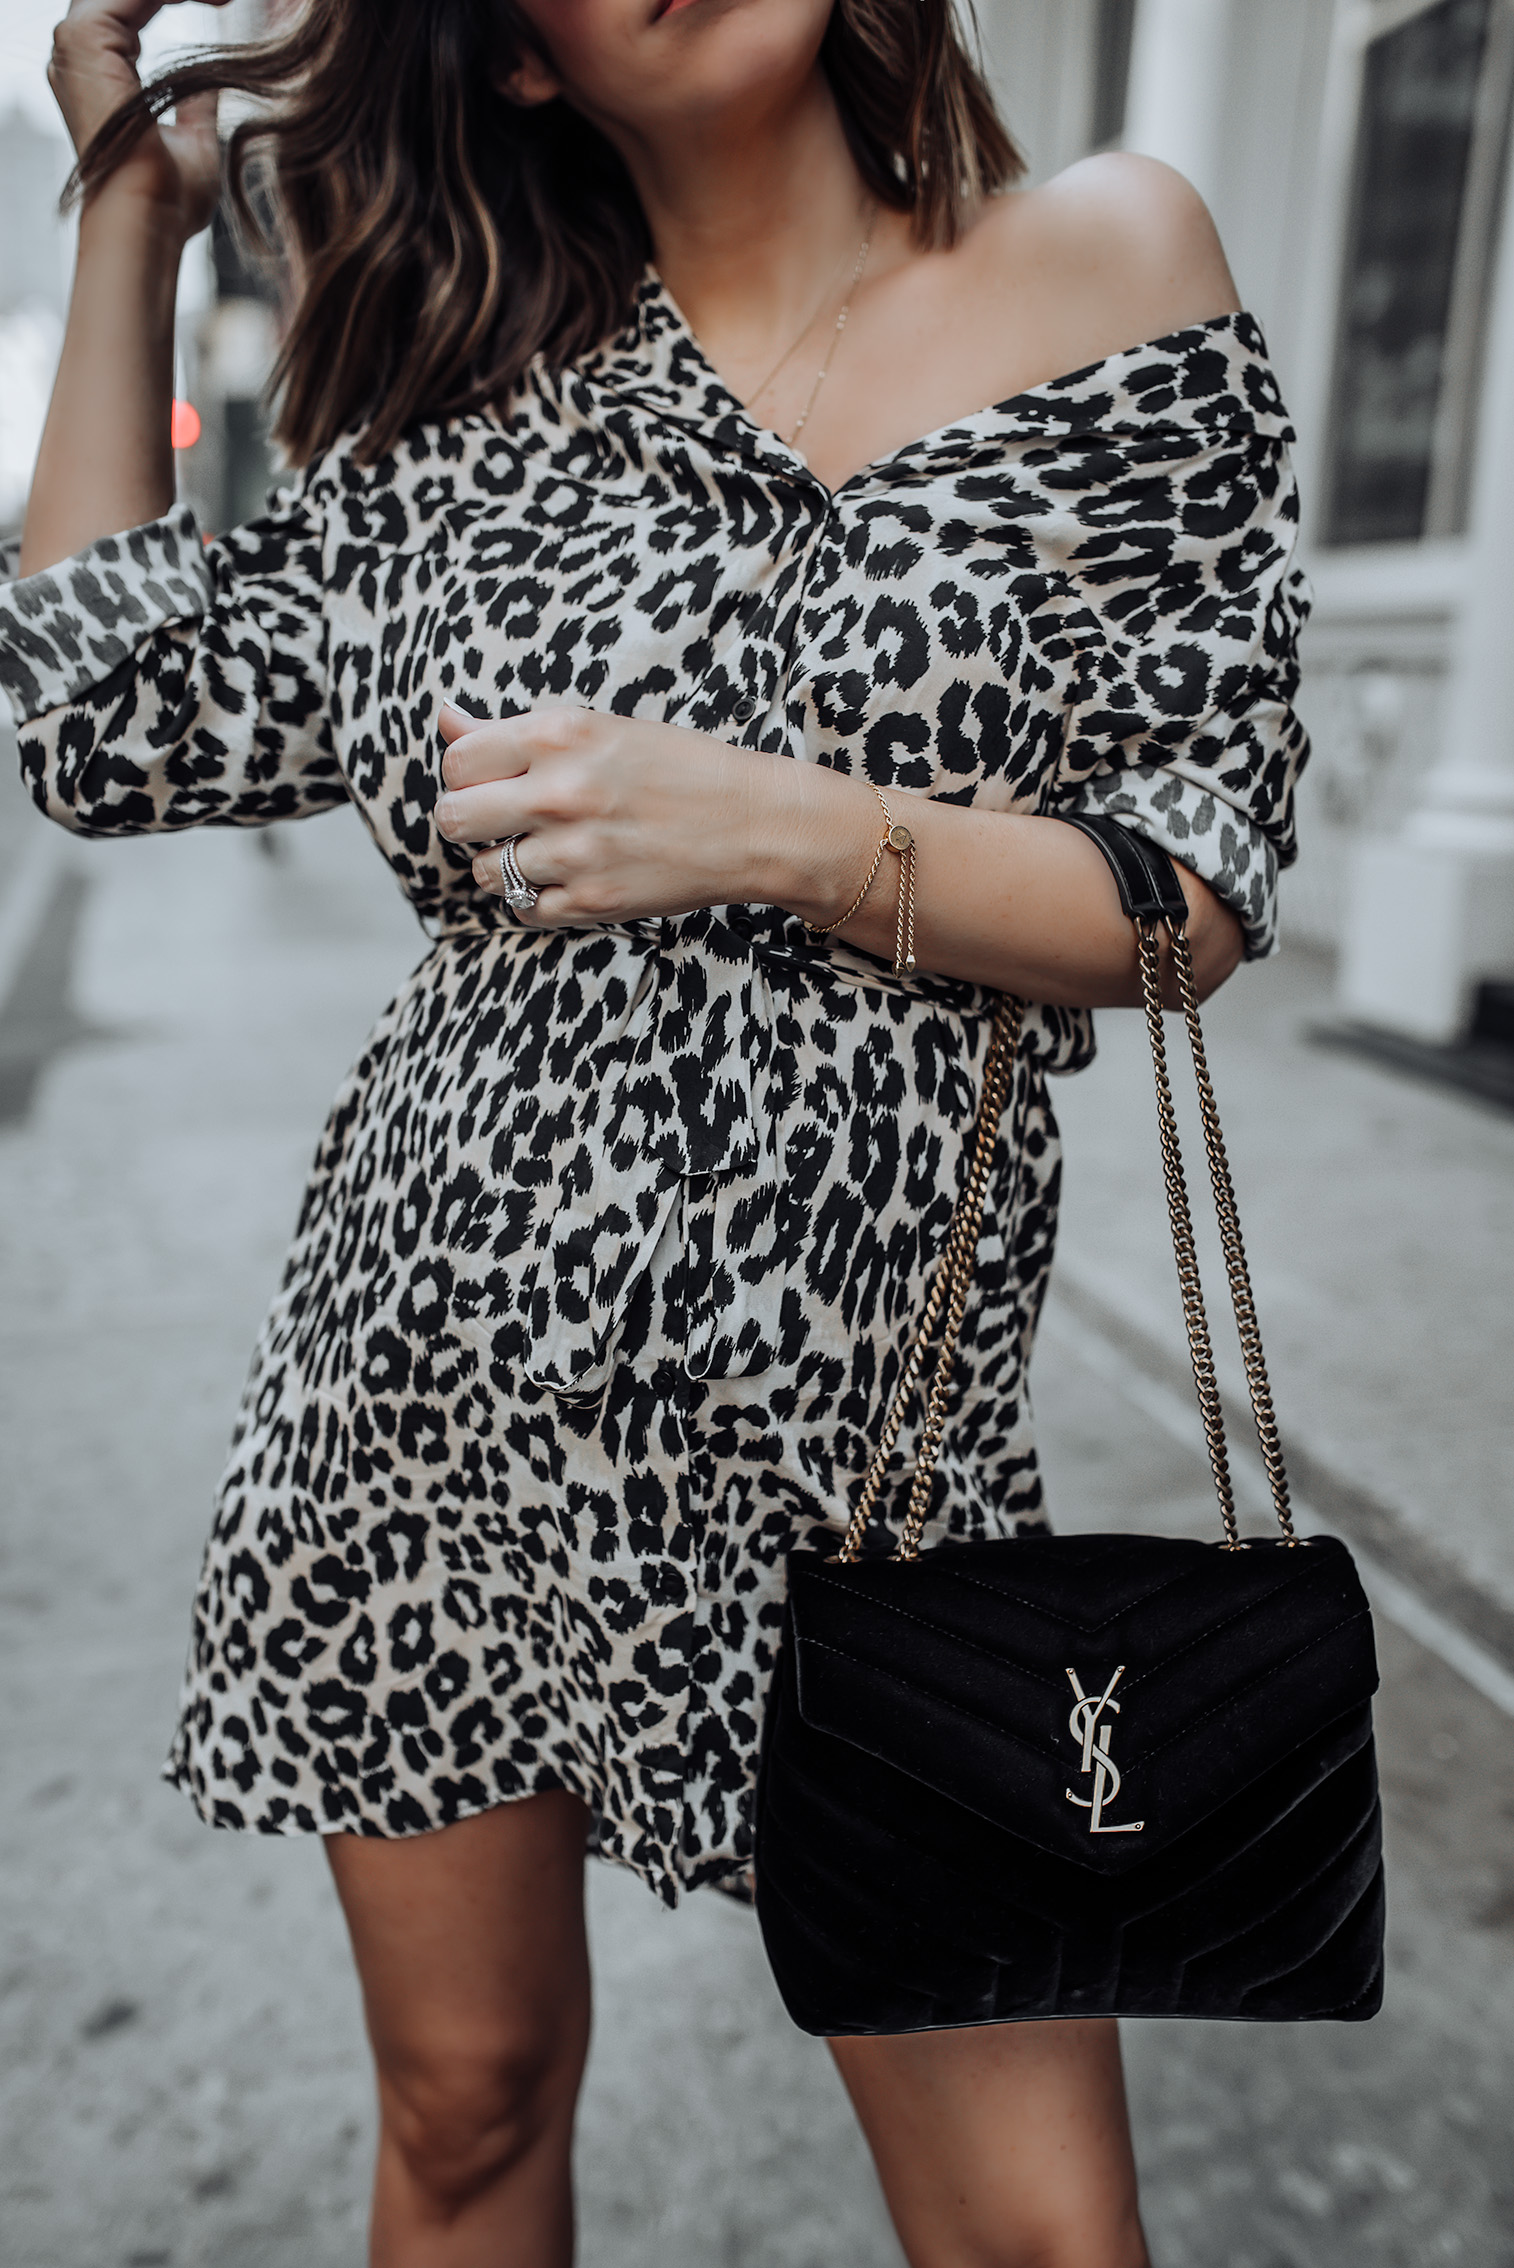 Leopard Wrap Dress | Hurricane Croc Boots | YSL LouLou Bag #topshop #yslbag #ankleboots #streetstyle